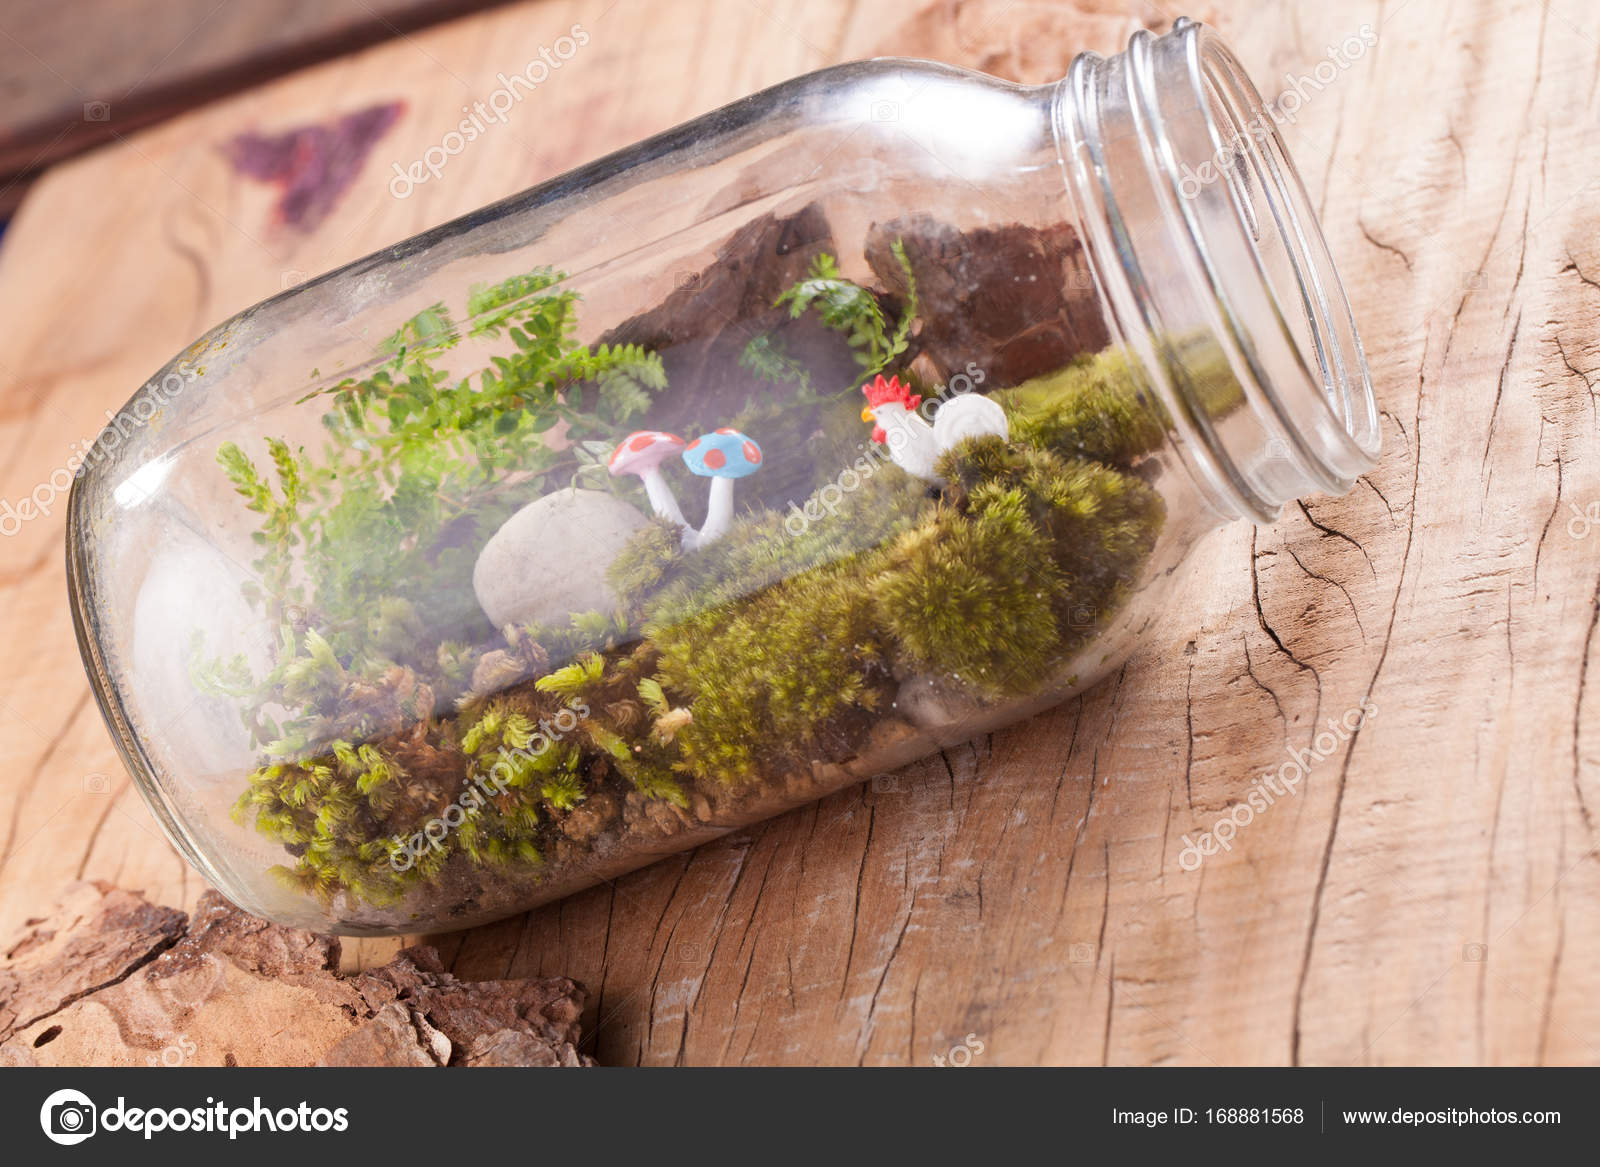 A Terrarium Garden Scene In A Clear Bottle With Moss Pebble Chicken And Mushroom Toy Put On Wooden Table Stock Photo Image By C Akeeris 168881568